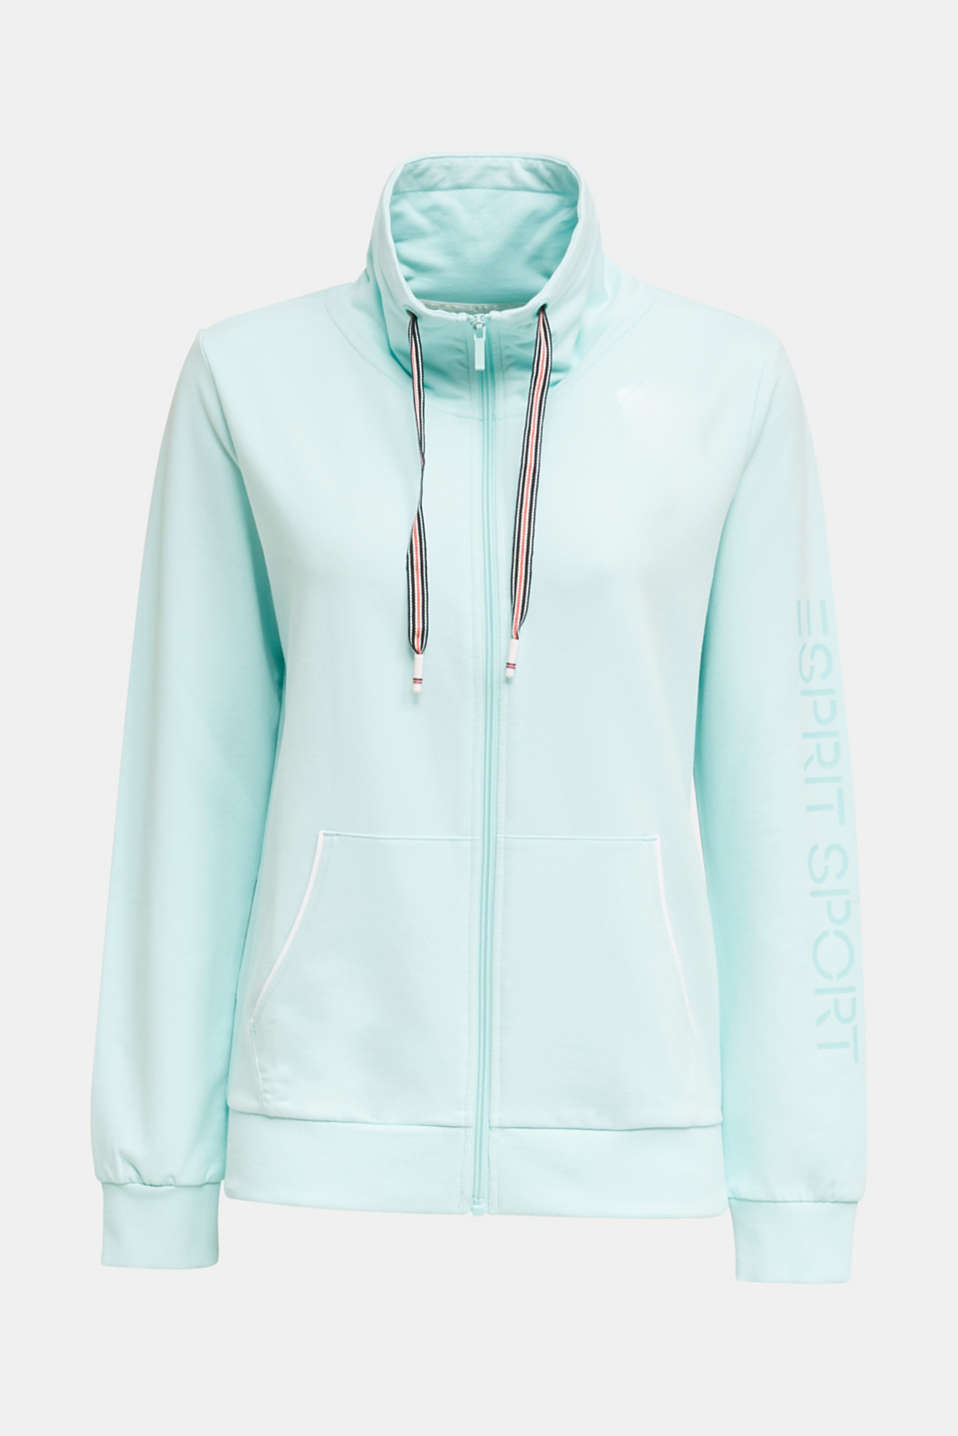 Sweatshirt fabric cardigan with a drawstring collar, TURQUOISE, detail image number 5